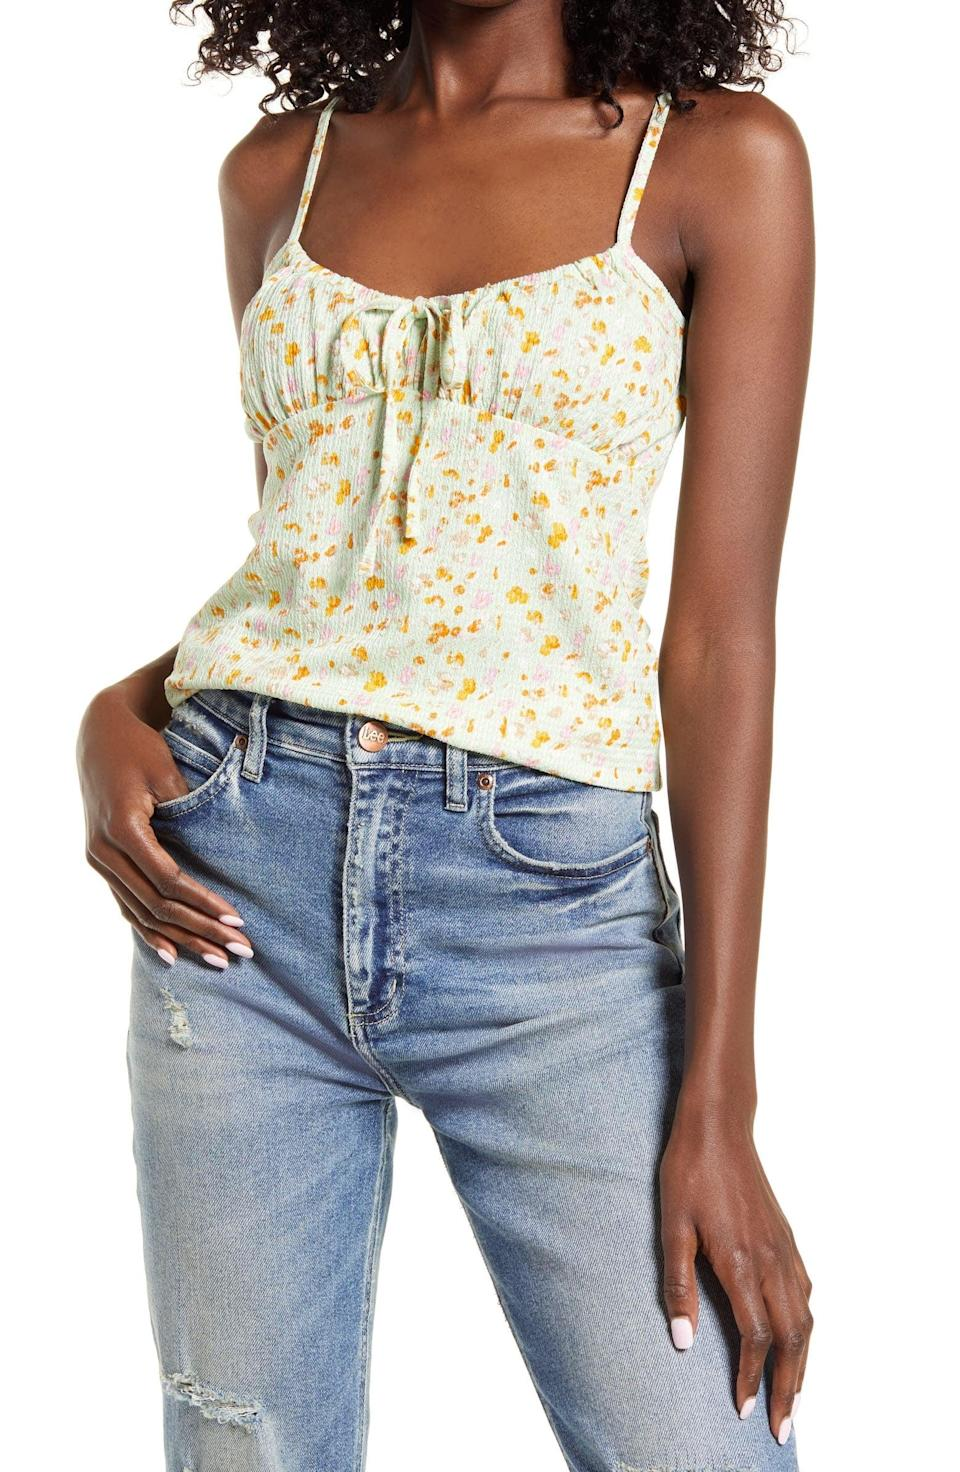 <p>This <span>Vero Moda Floral Textured Knit Cami</span> ($35) will pair nicely with a slip skirt or a pair of jeans.</p>